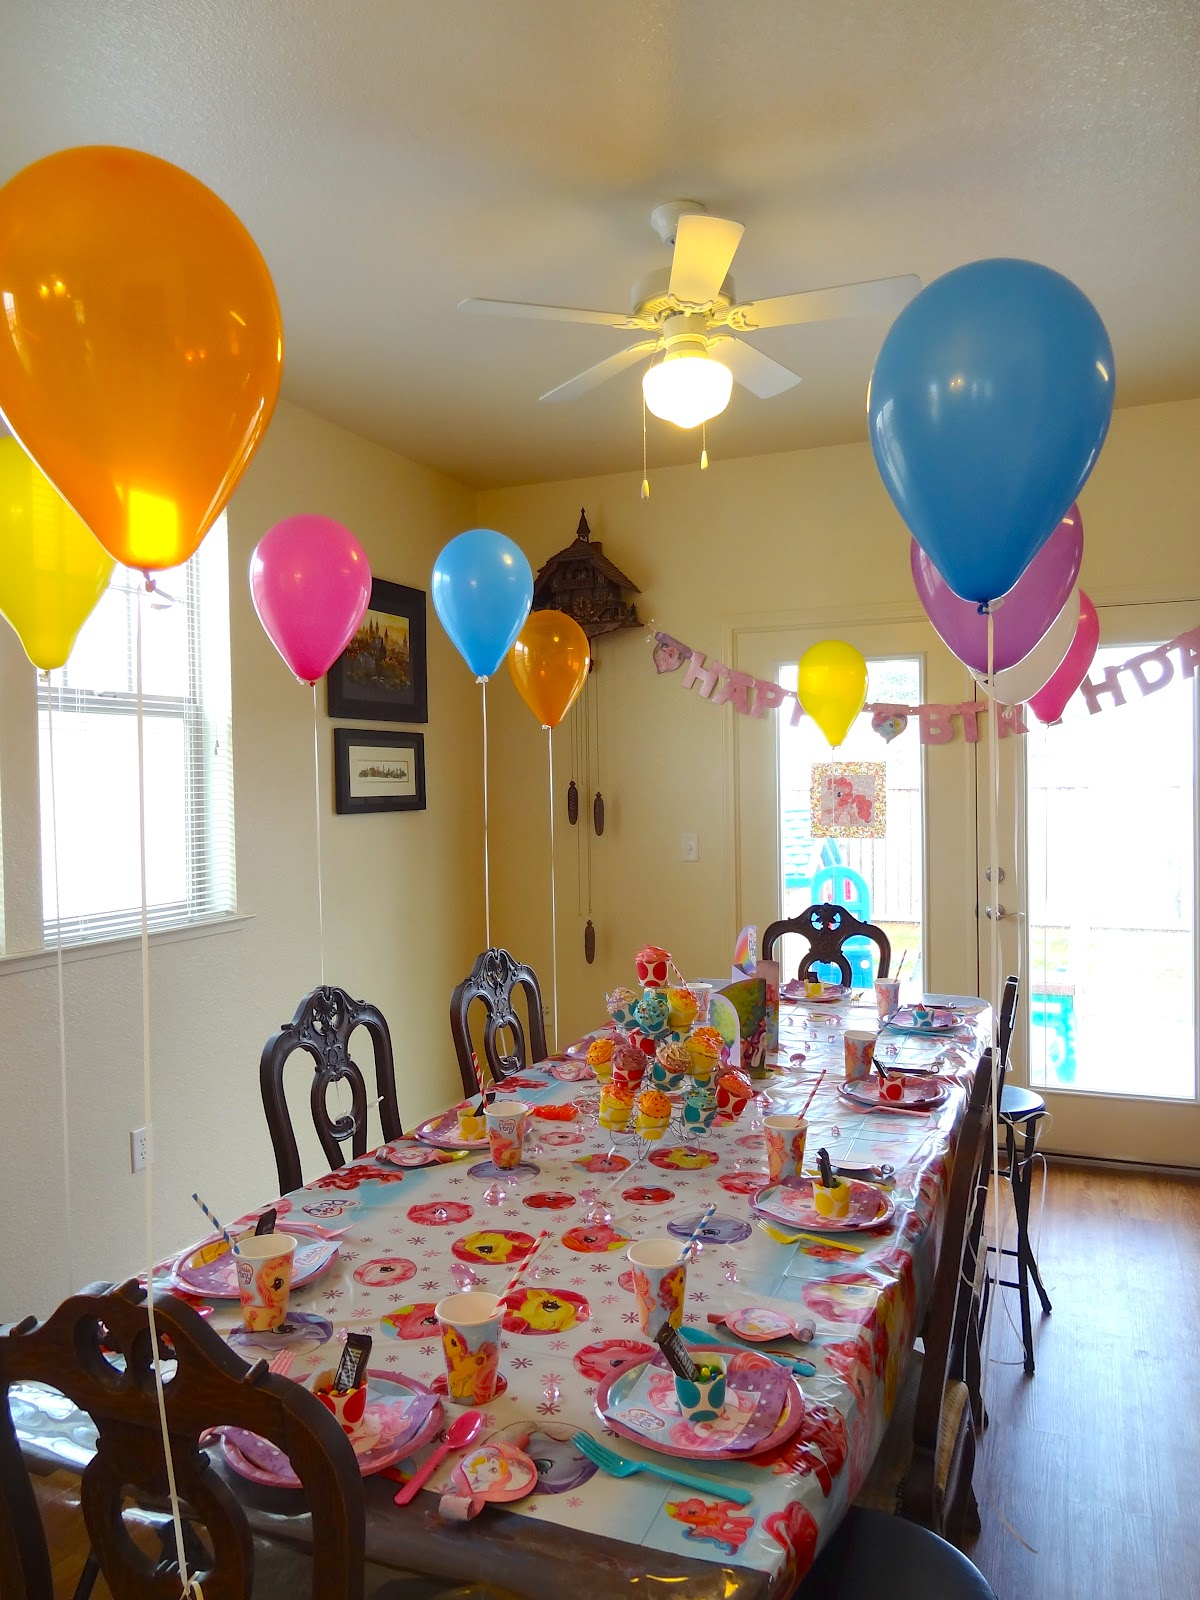 welcome to the krazy kingdom: taya's 5th birthday party - my little pony